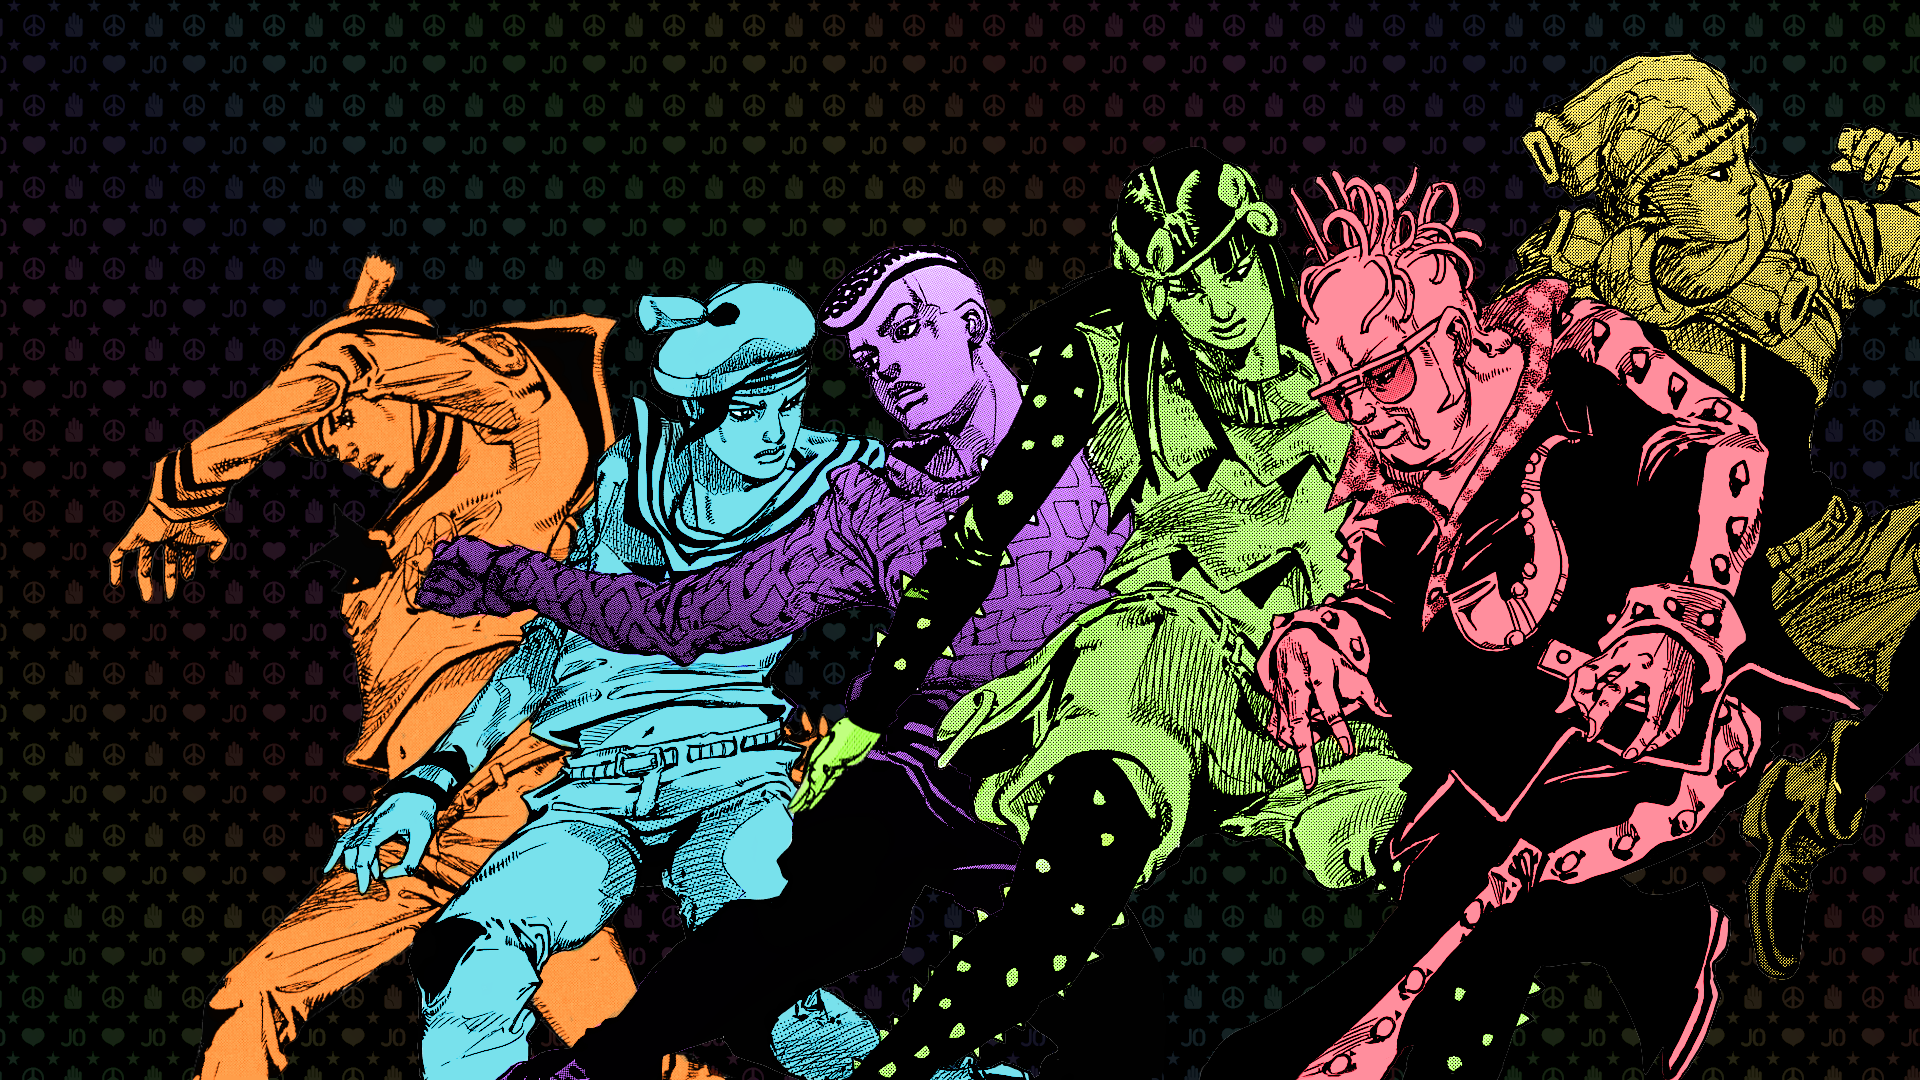 Wallpapers JoJo's Bizarre Adventure - Manga y Anime - Taringa!